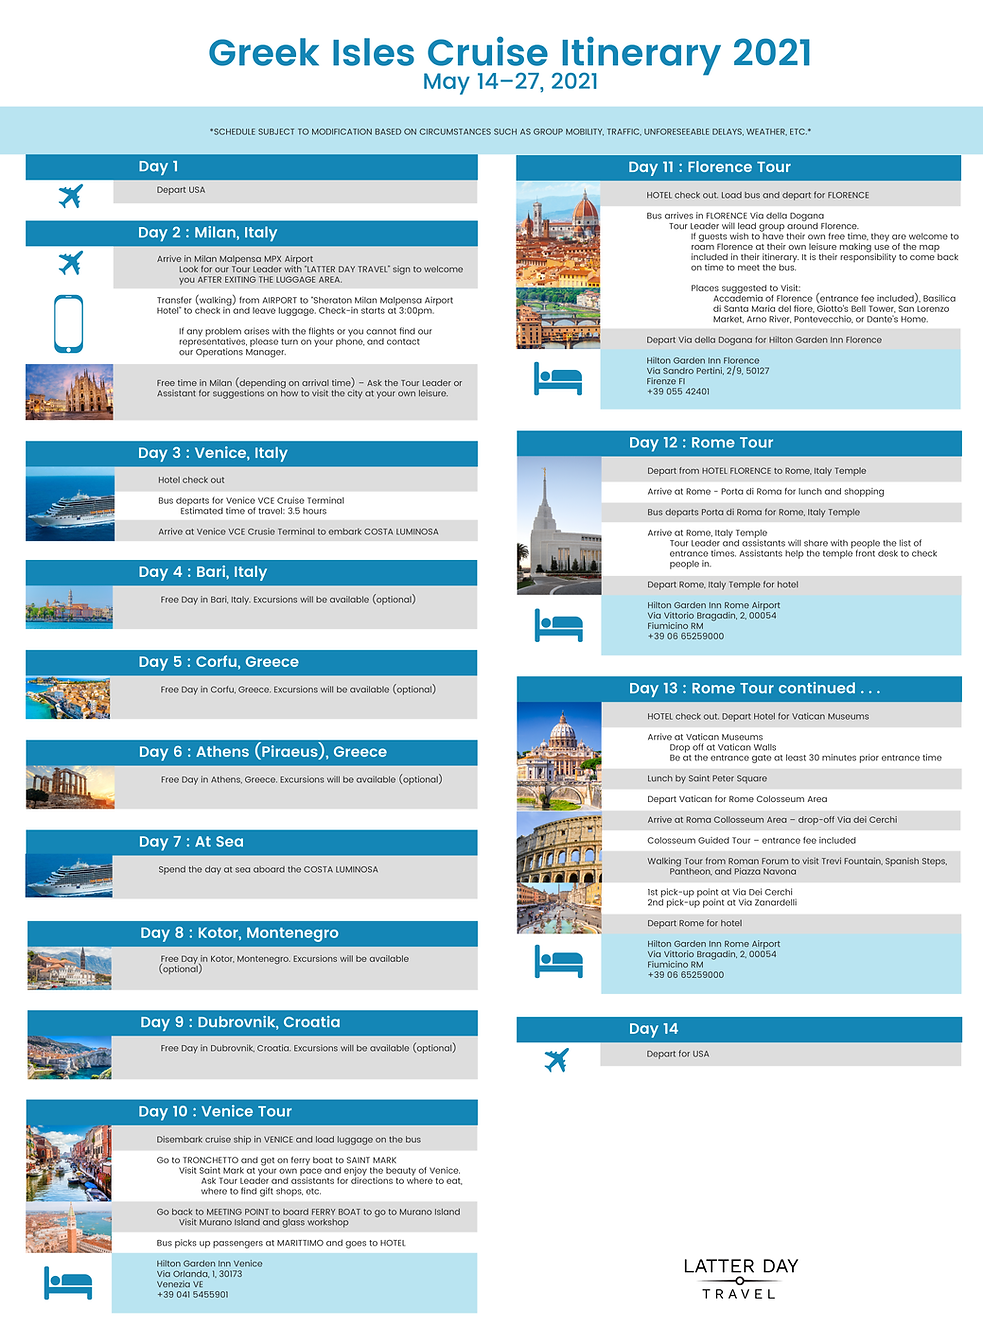 LatterDayTravel Itinerary Graphic Greek